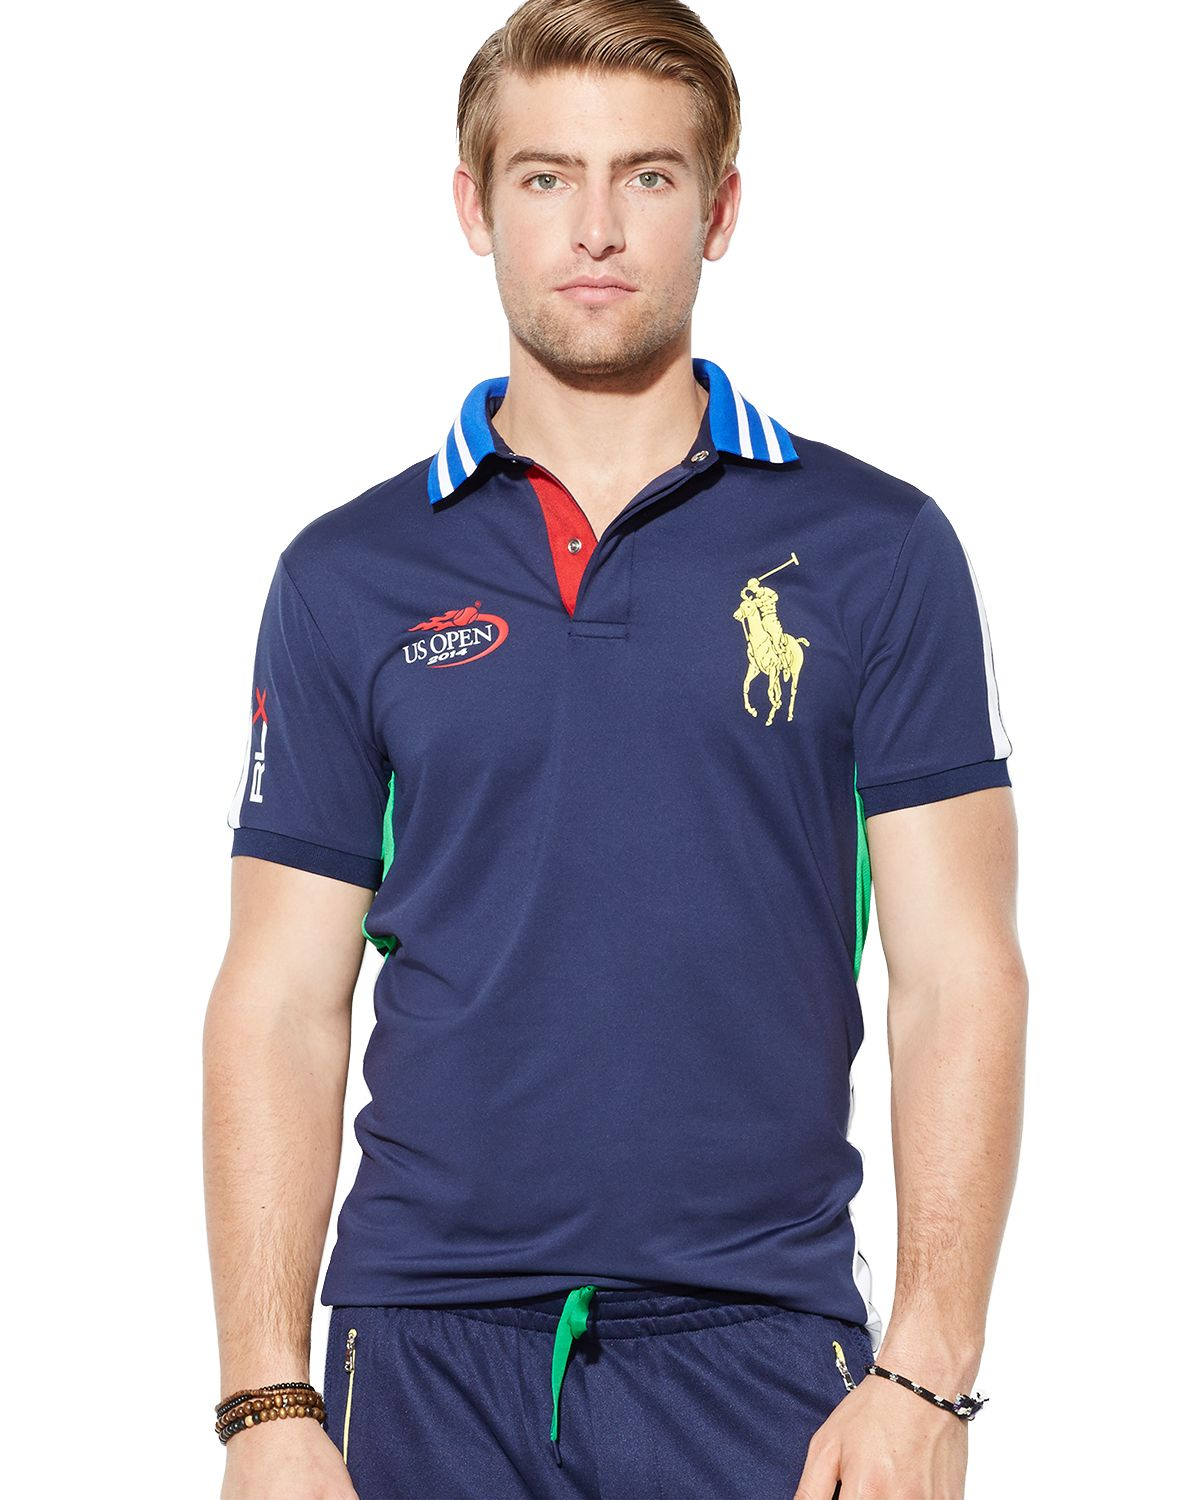 Ralph lauren polo us open rlx custom ball boy airflow polo for Us polo shirts for mens